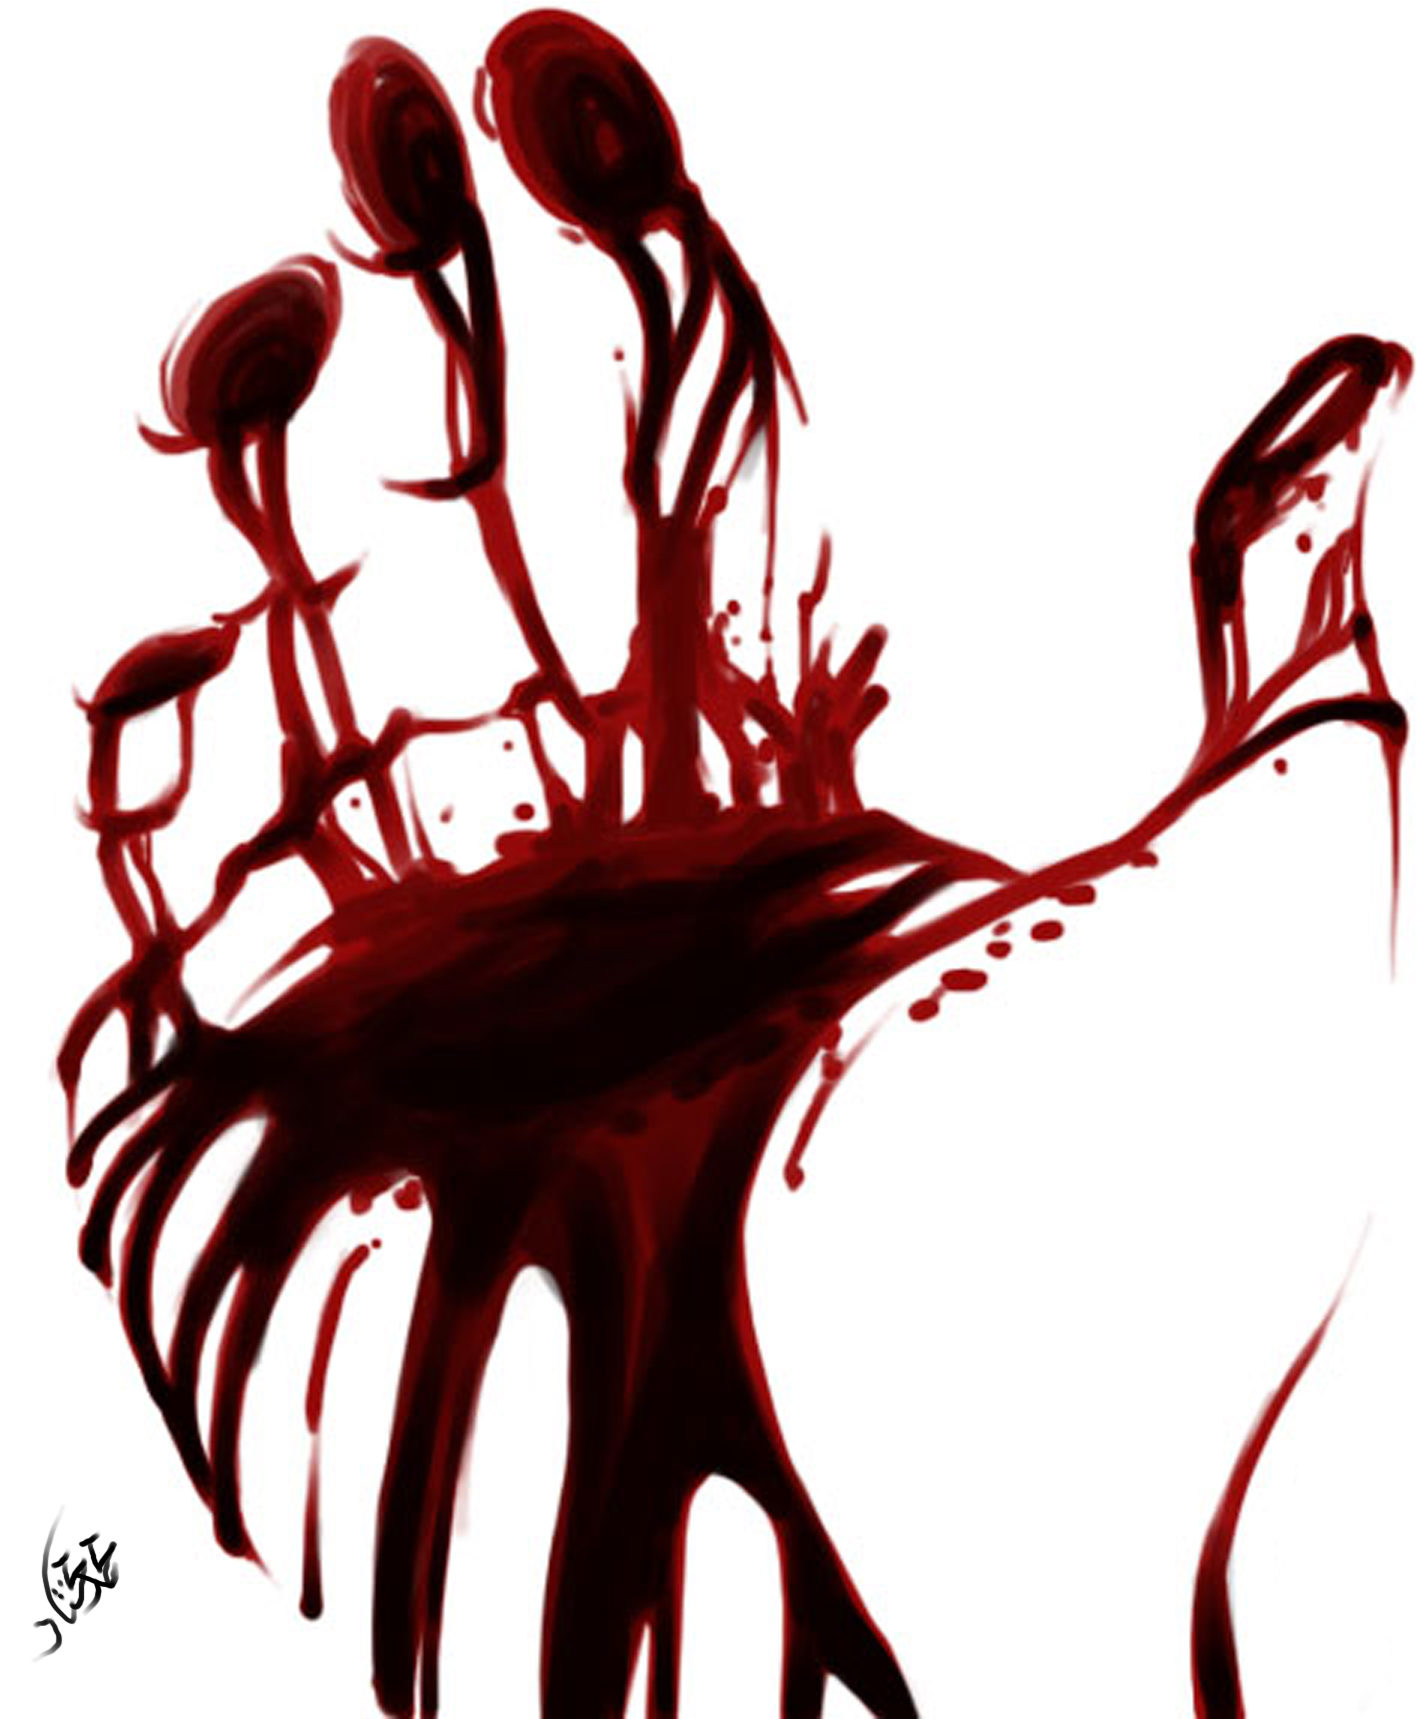 Blood on my hands?